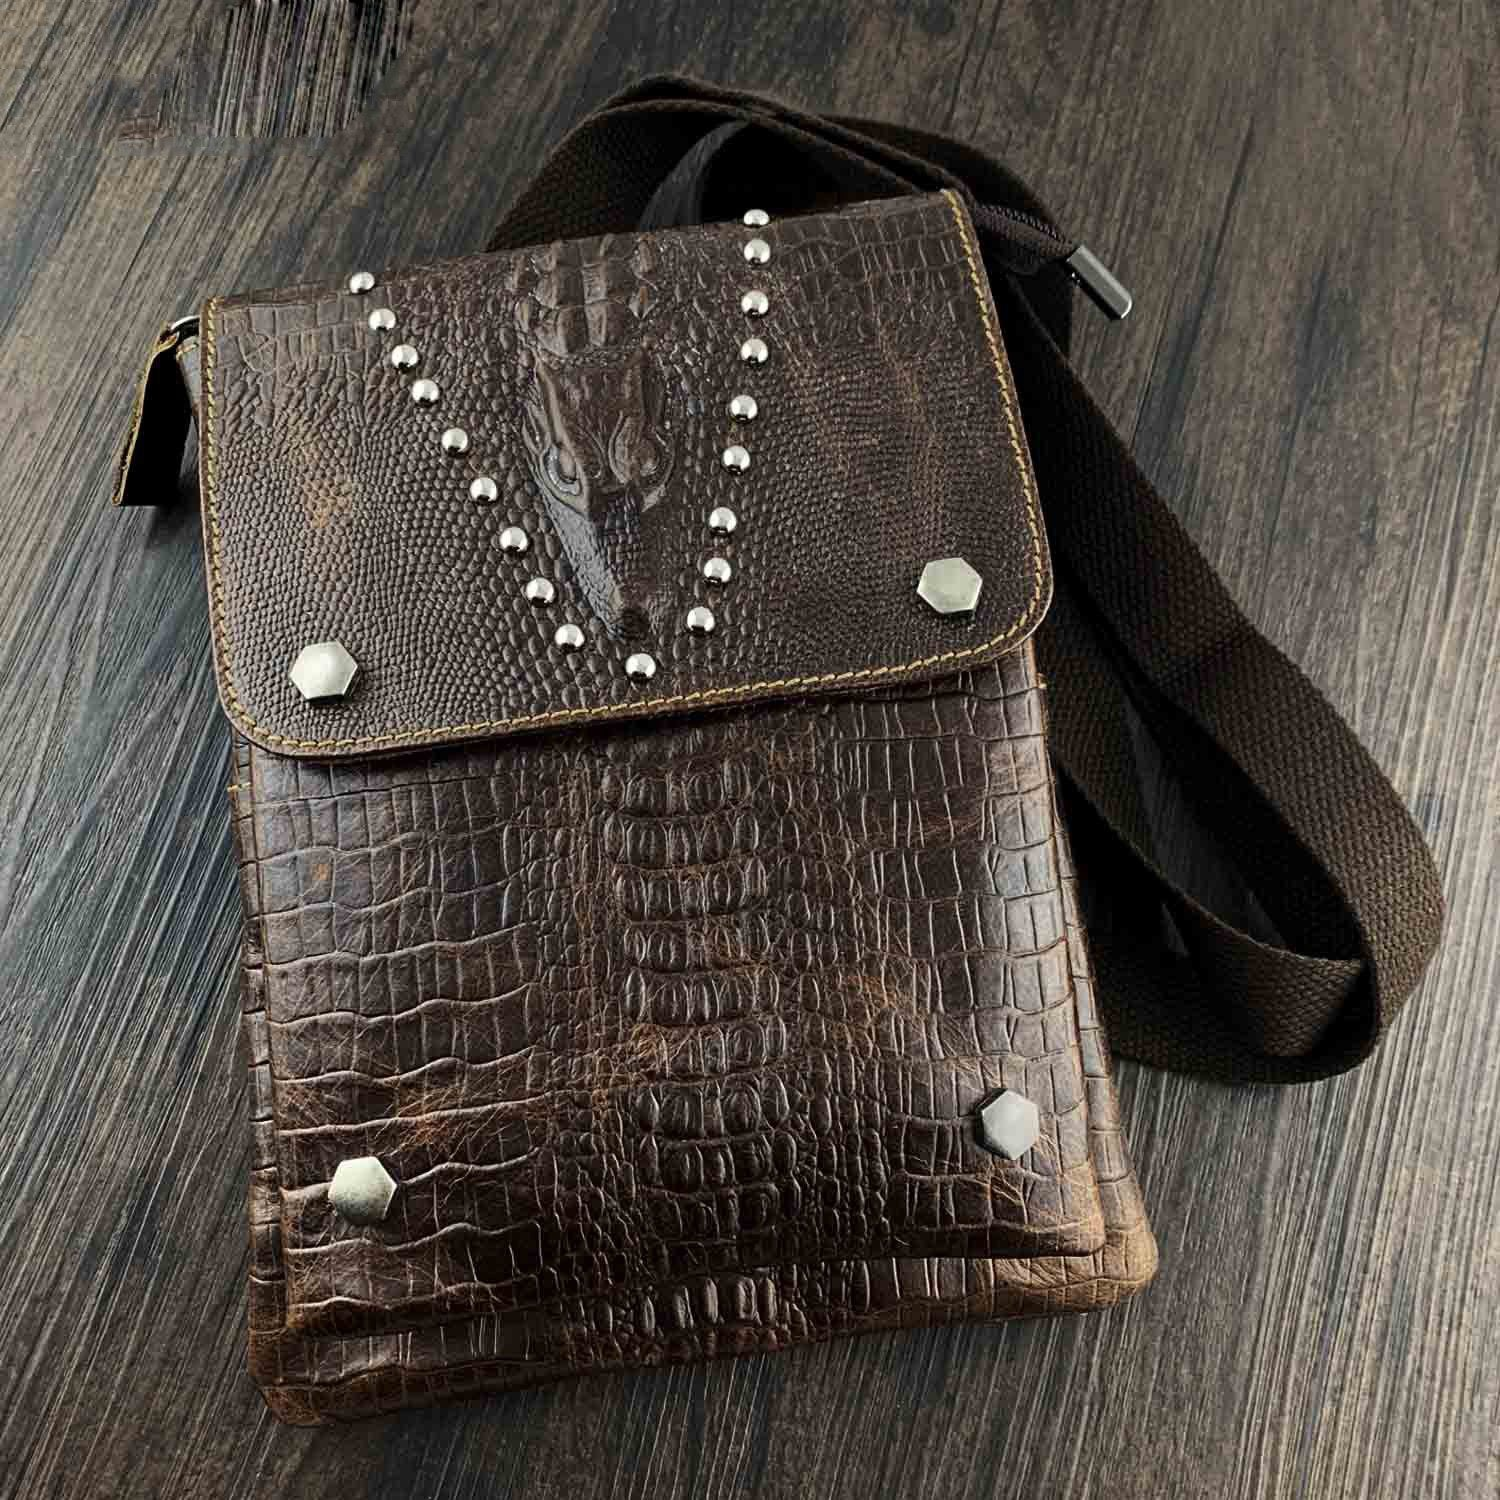 BADASS BROWN LEATHER MENS SMALL VERTICAL SHOULDER BAG SIDE BAG COURIER BAG MESSENGER BAG FOR MEN